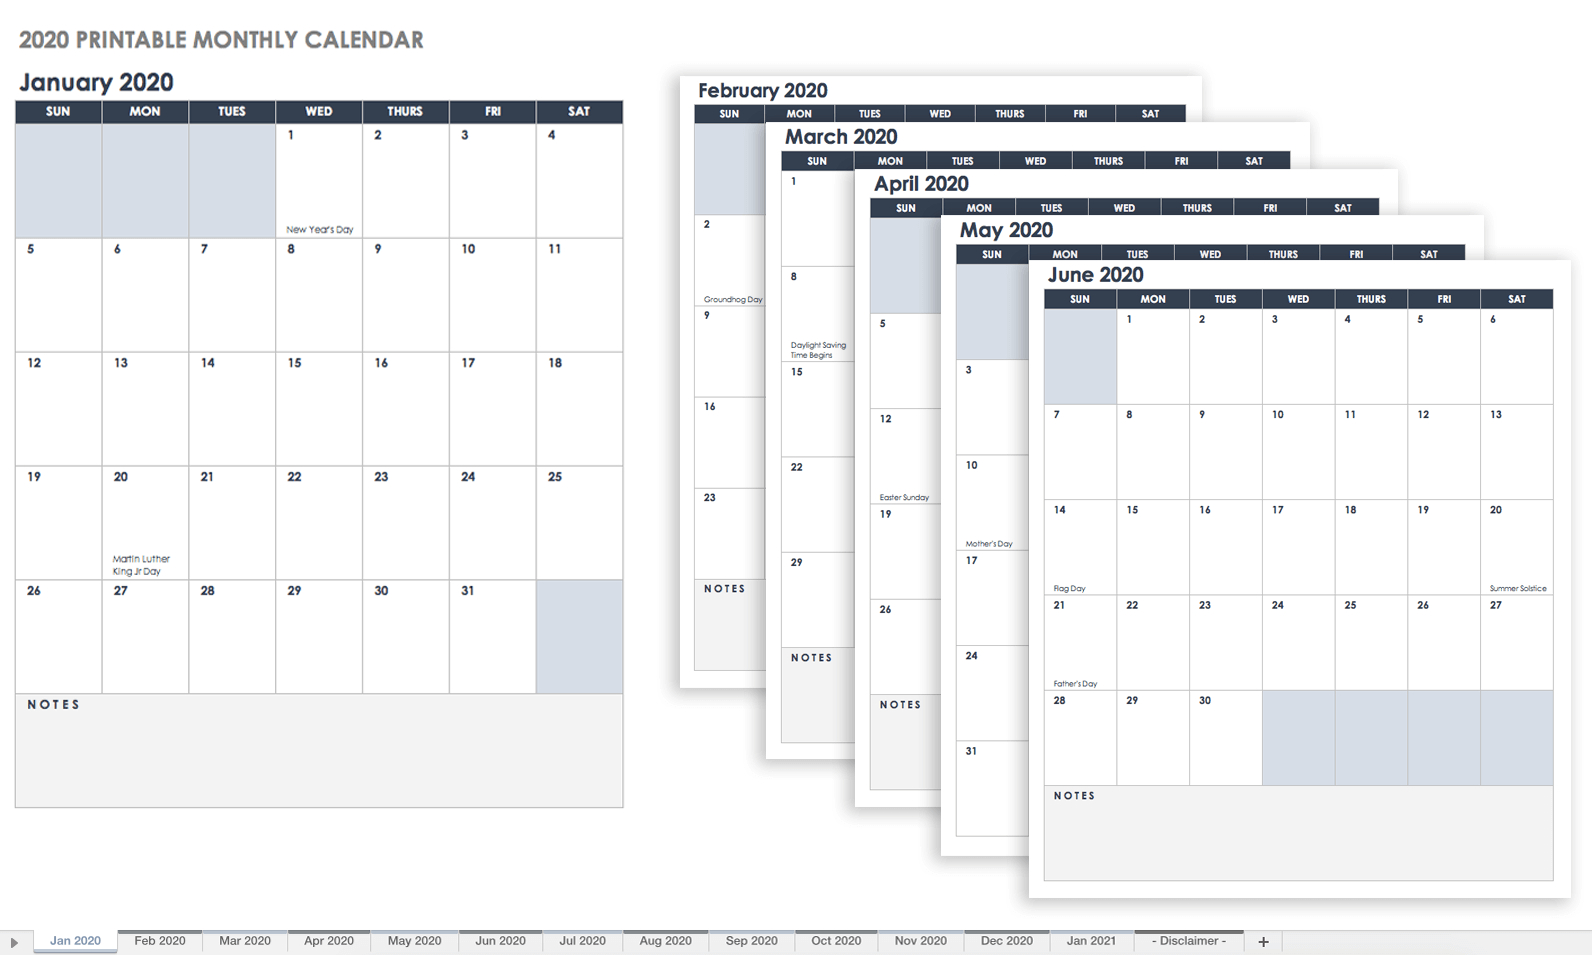 Free Blank Calendar Templates - Smartsheet intended for Blank Lined Weekly Printable Calendar